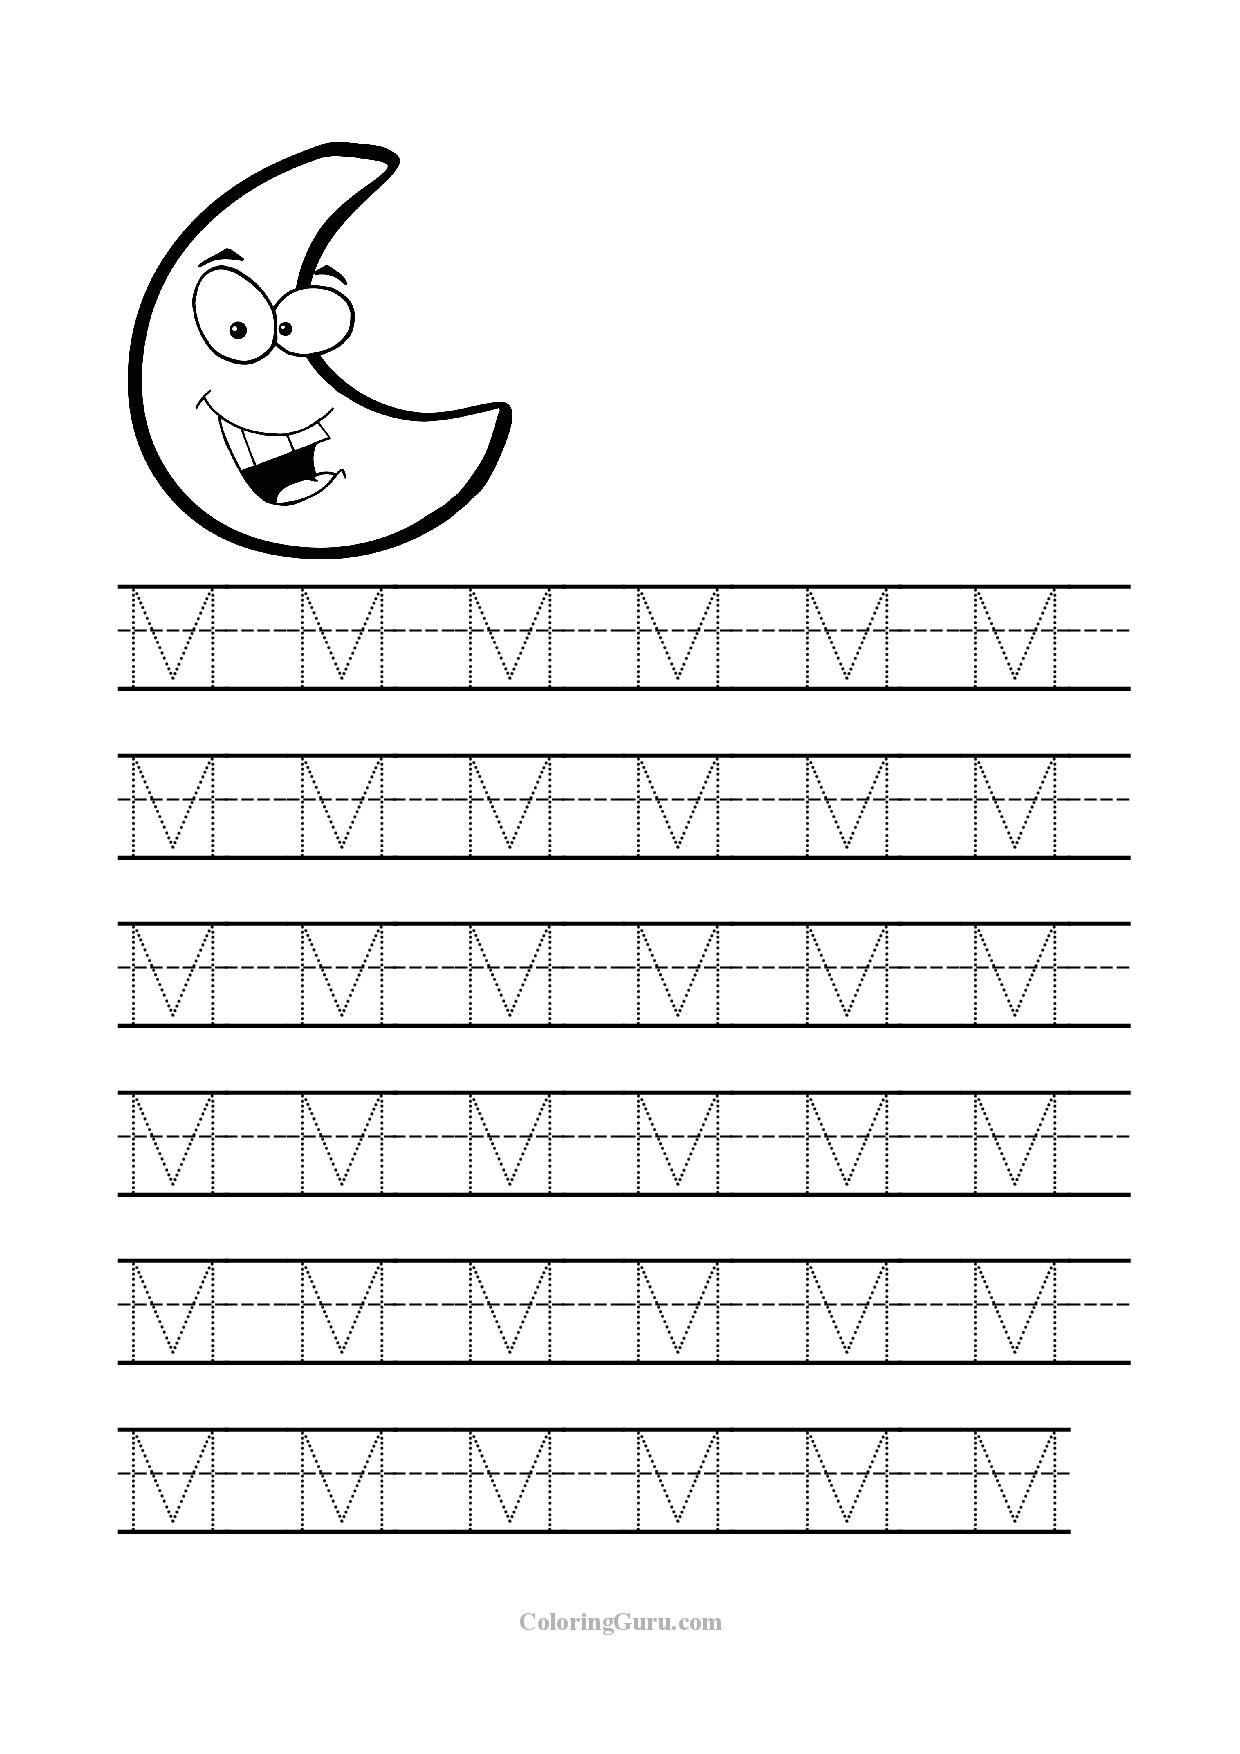 Free Printable Letter M Worksheets Free Printable Tracing Letter M Worksheets for Preschool